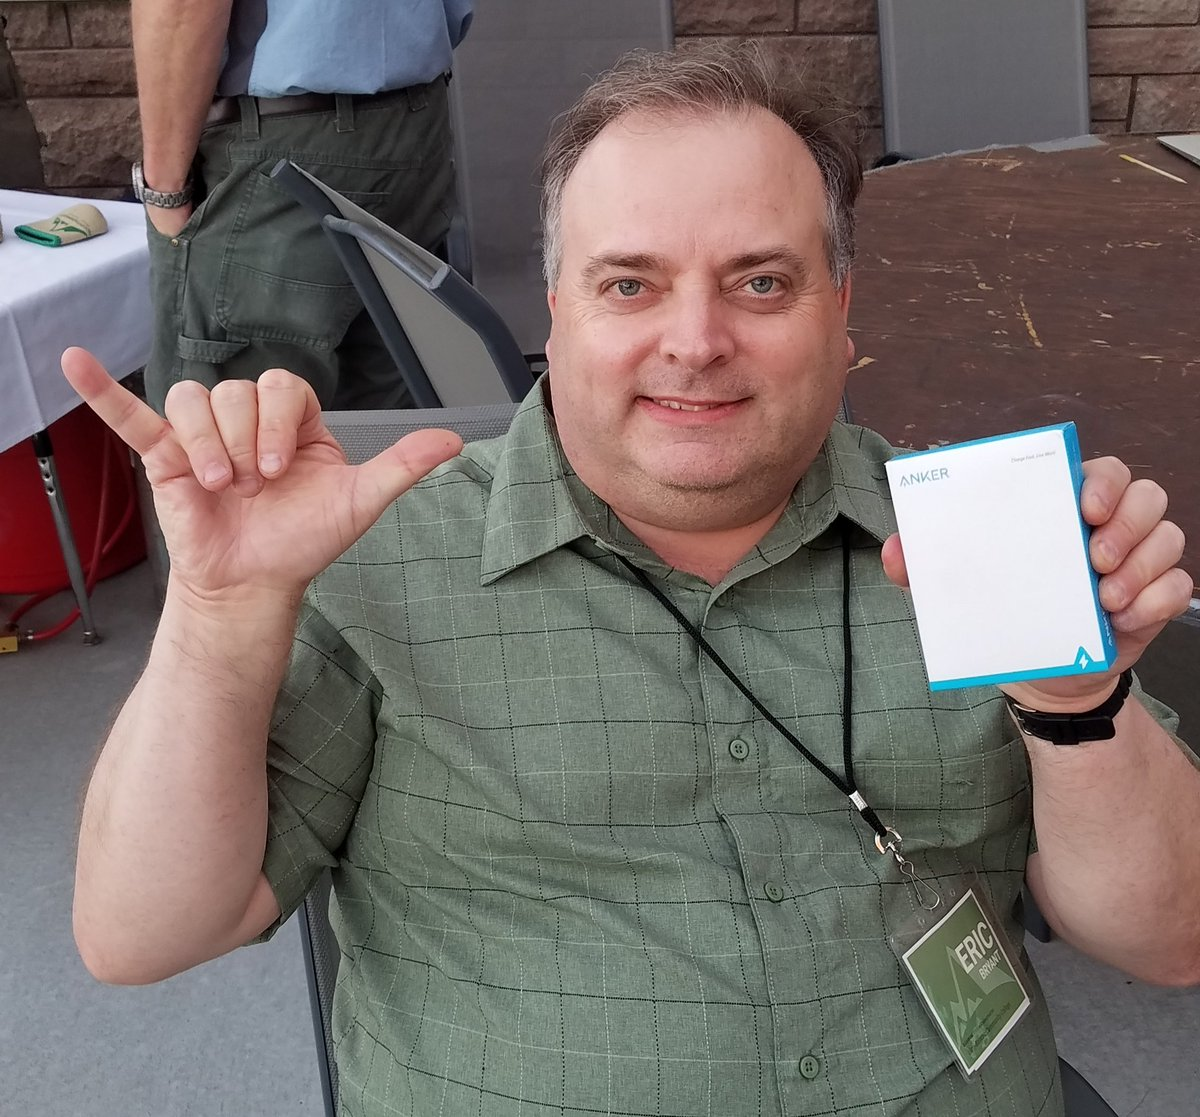 It took all of my 167 #MTMoot bucks, but this precious @AnkerOfficial 10K PD battery is MINE! https://t.co/Vc1d5SdRQ9